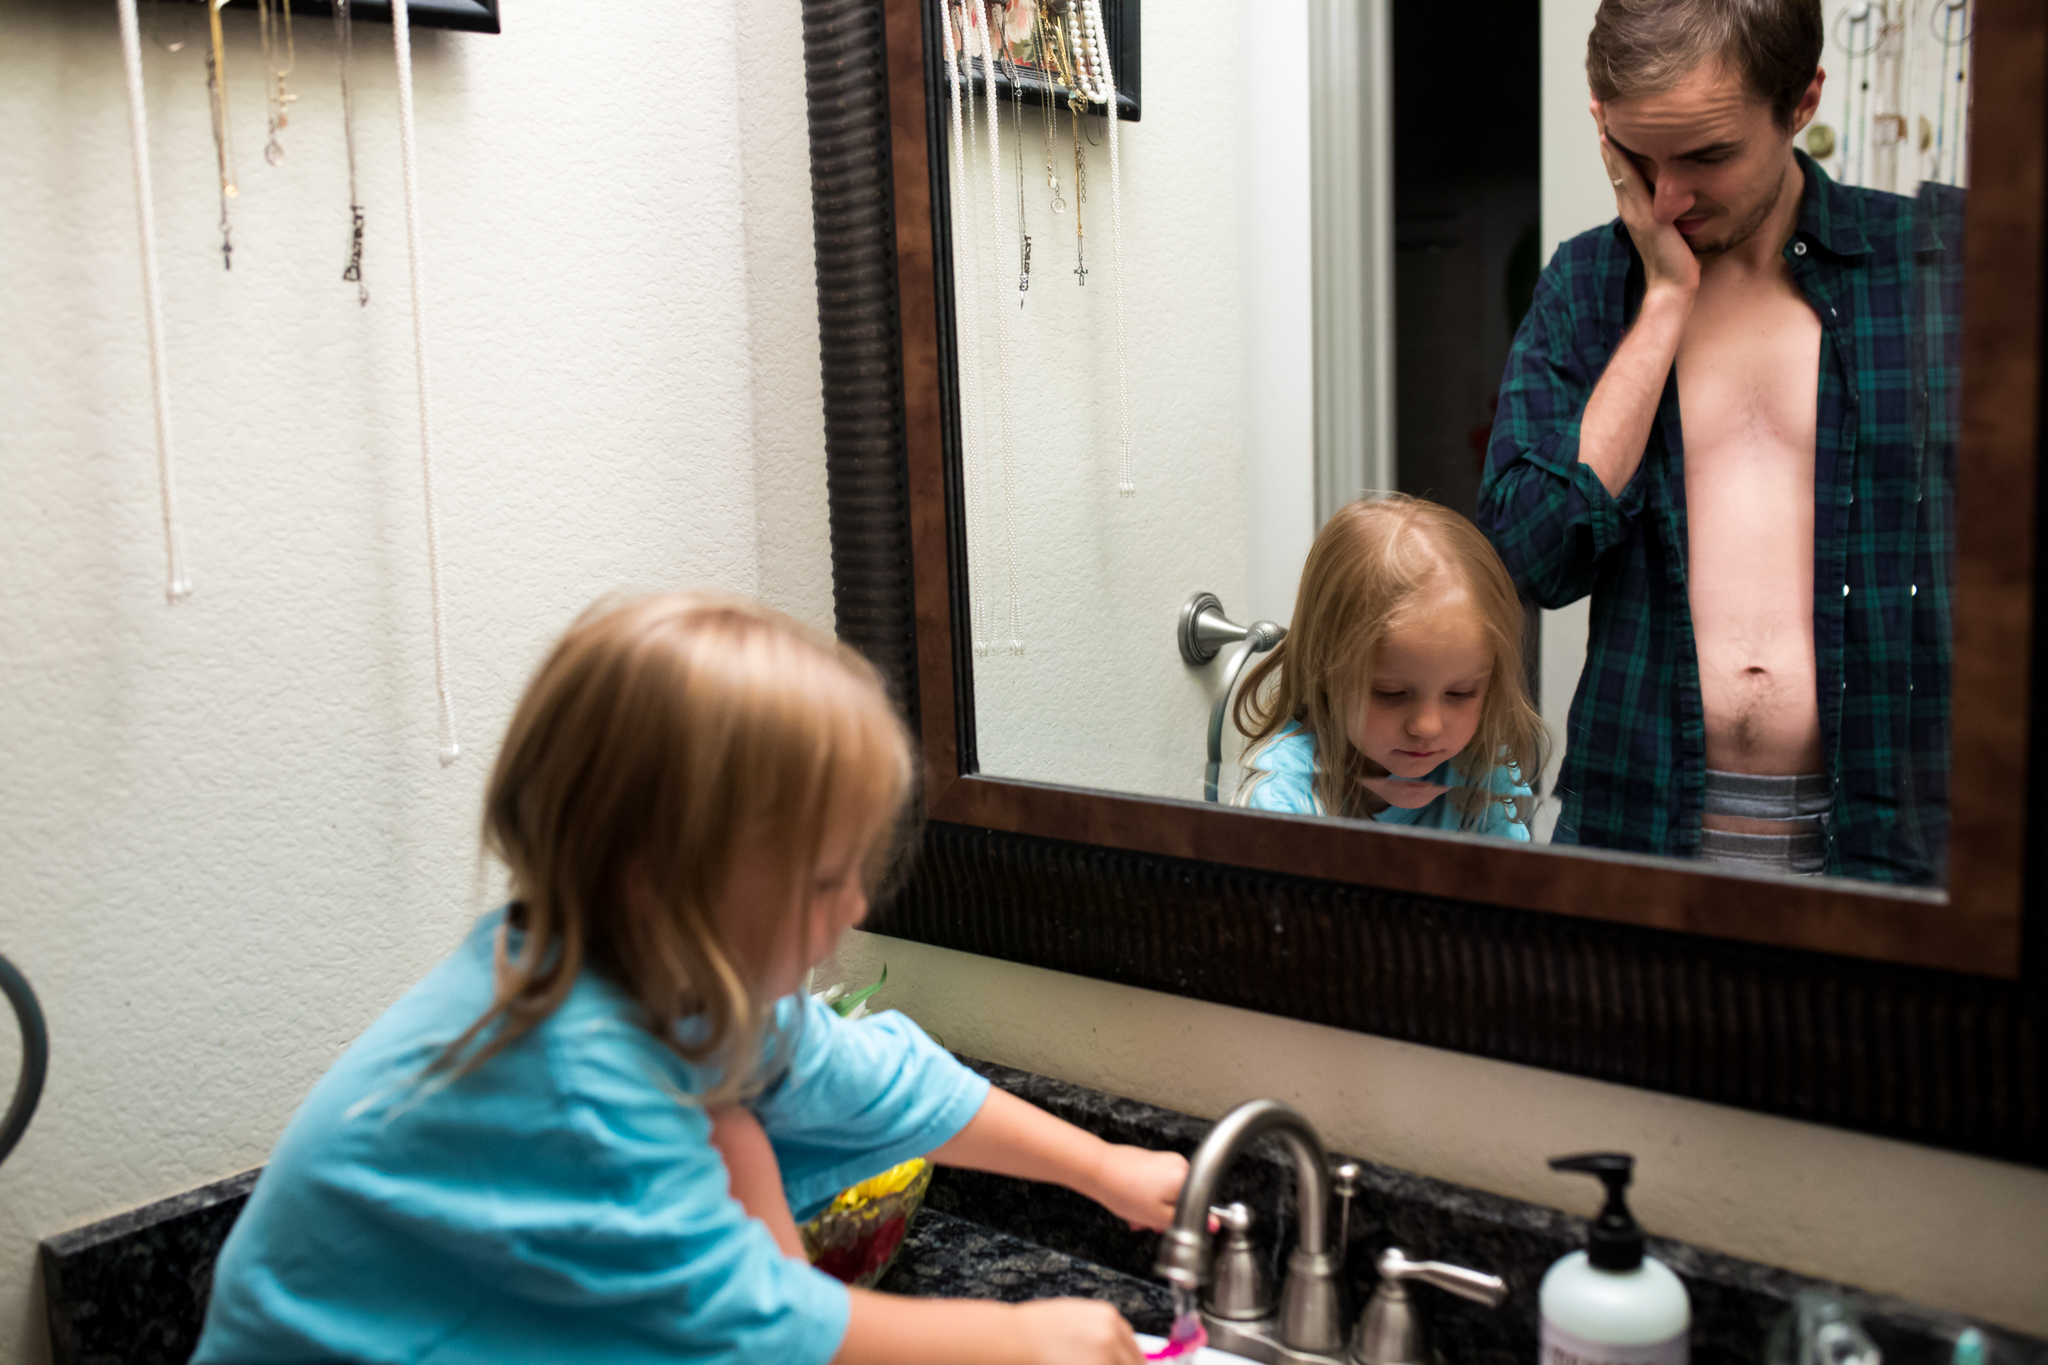 Lawren Rose Photography takes a picture of a family at the end of the day where the dad is clearly worn out as he watches his daughter brush her teeth during an in-home family photography session in farmers branch texas